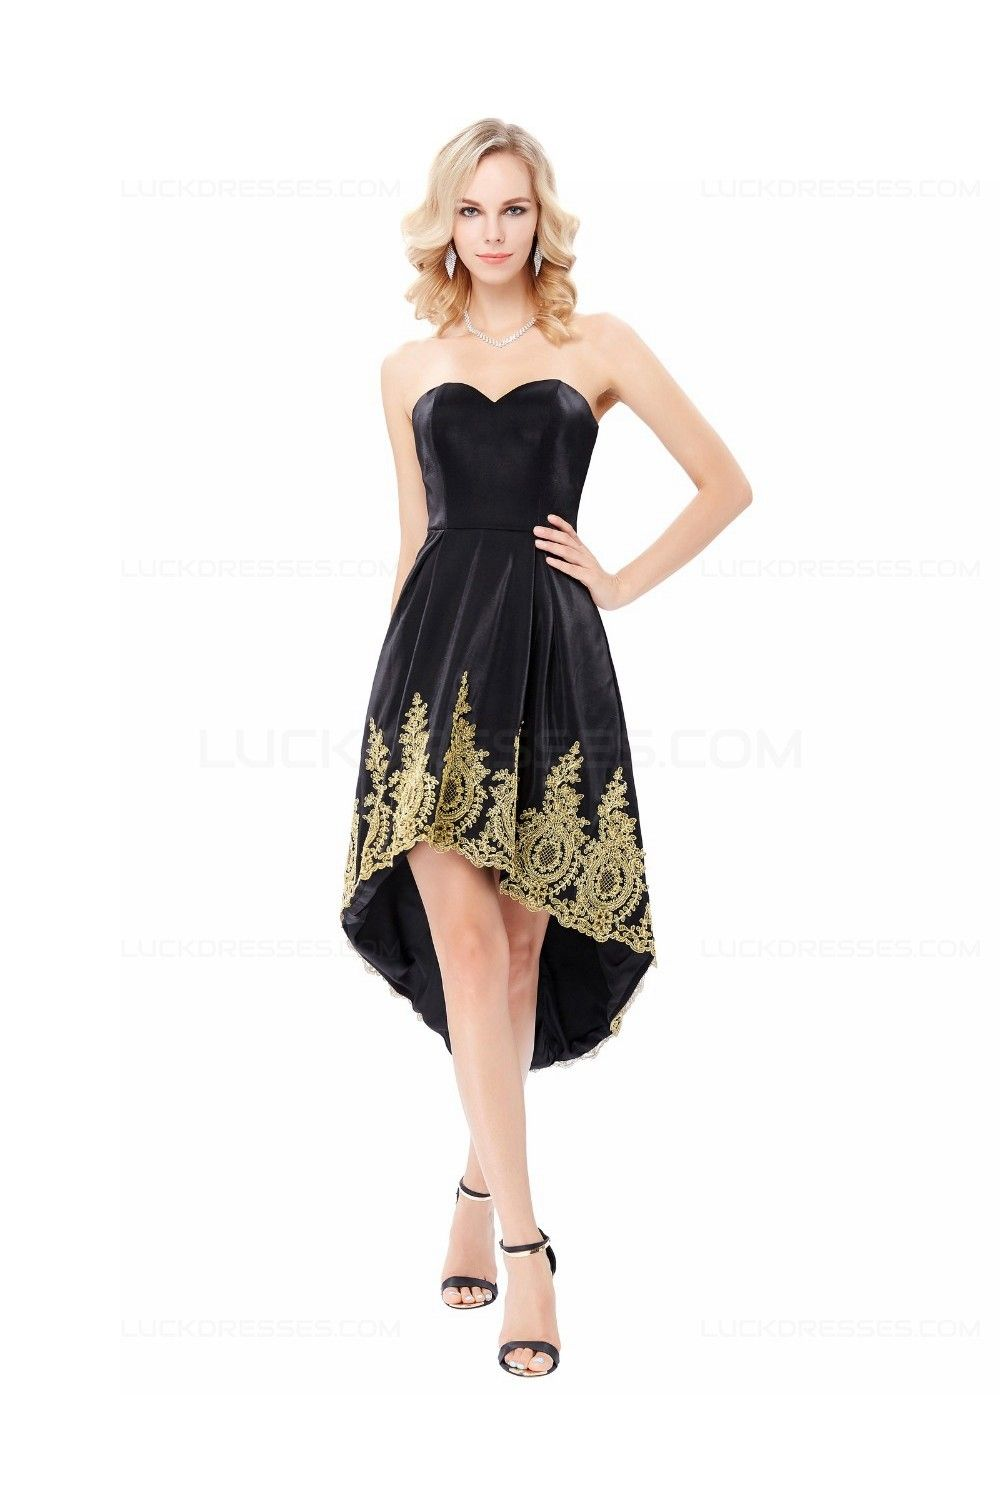 2a75fdfe7cc0 High Low Sweetheart Short Black Gold Lace Appliques Prom Dresses Party  Evening Gowns 3020291